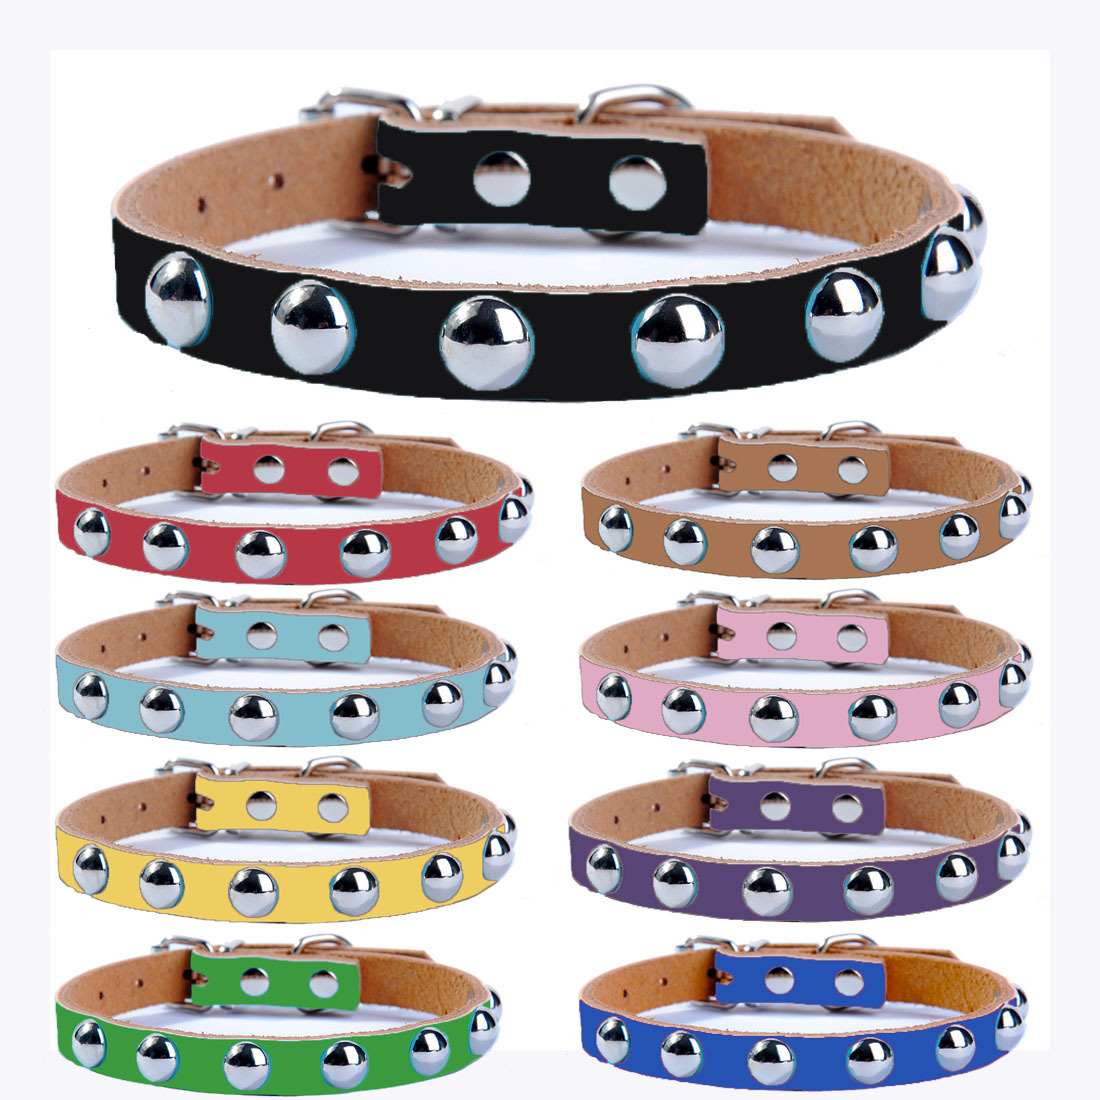 Pet Dog Collar Pure Leather Mushroom Nail Anti-Bite Rivet Small Dog Cat Neck Ring Genuine Leather Dog Chain